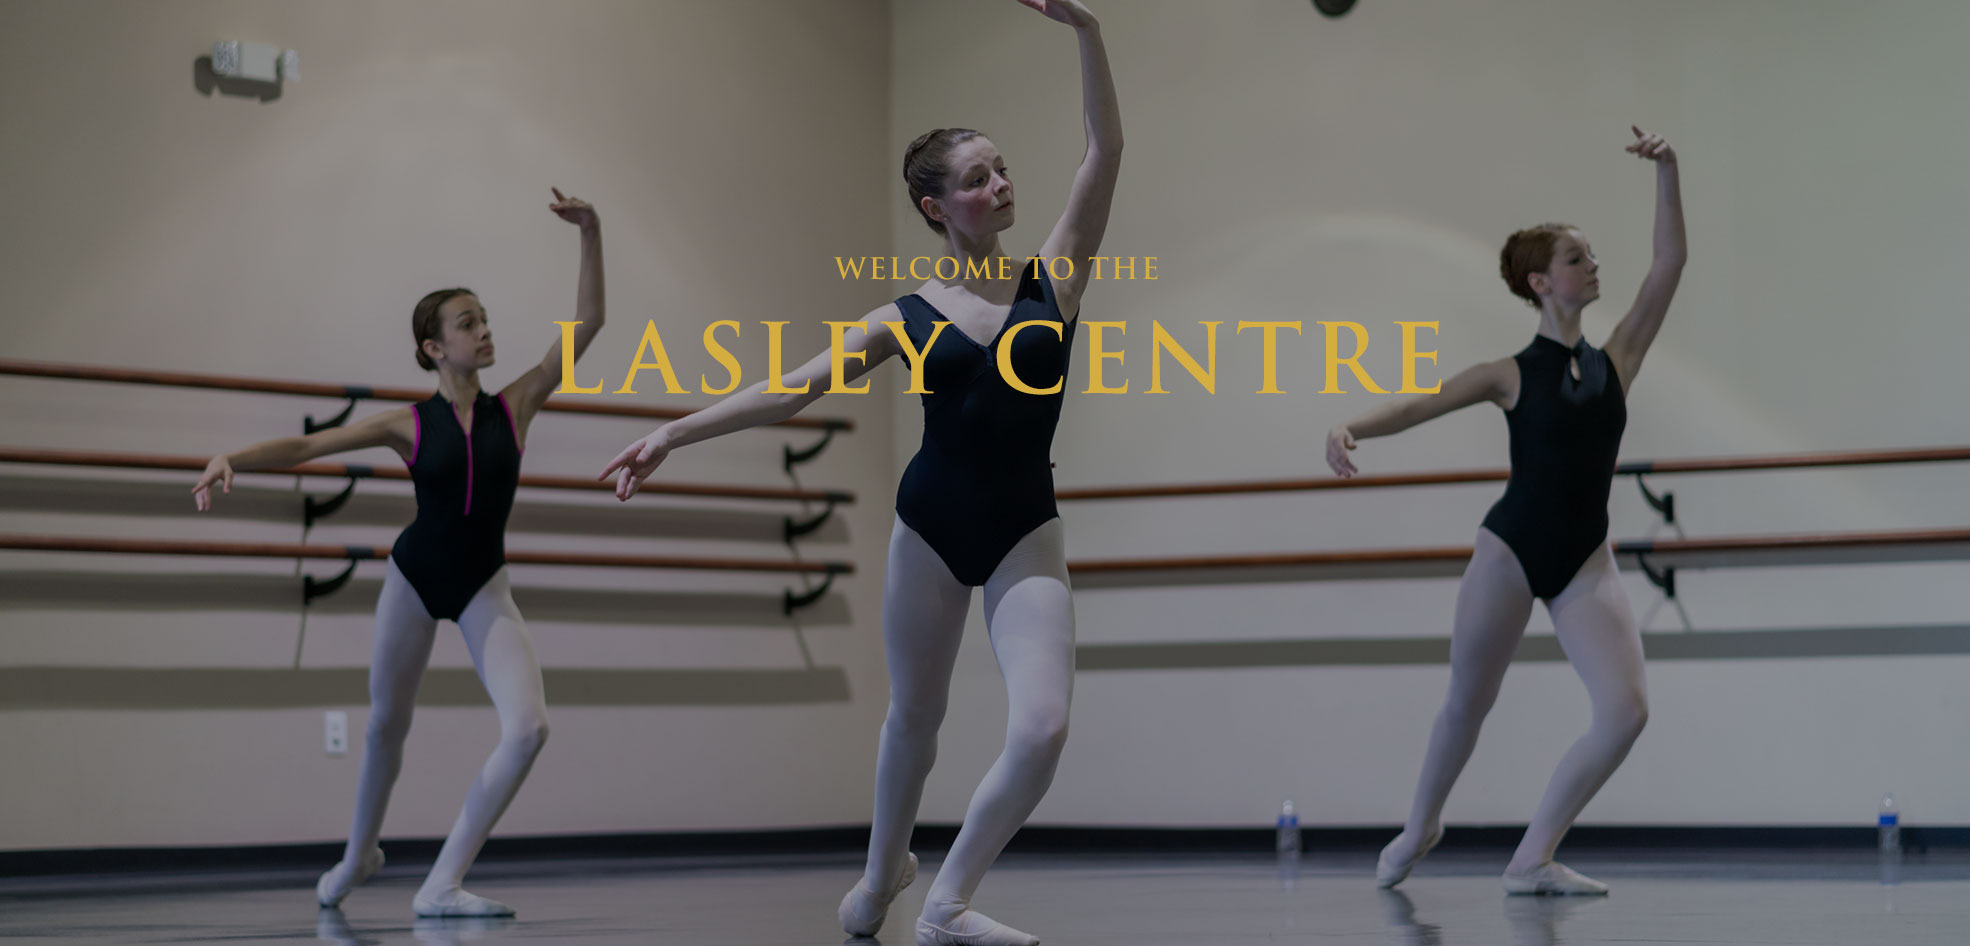 Lasley Centre for the Performing Arts, Dance School in Warrenton, Virginia